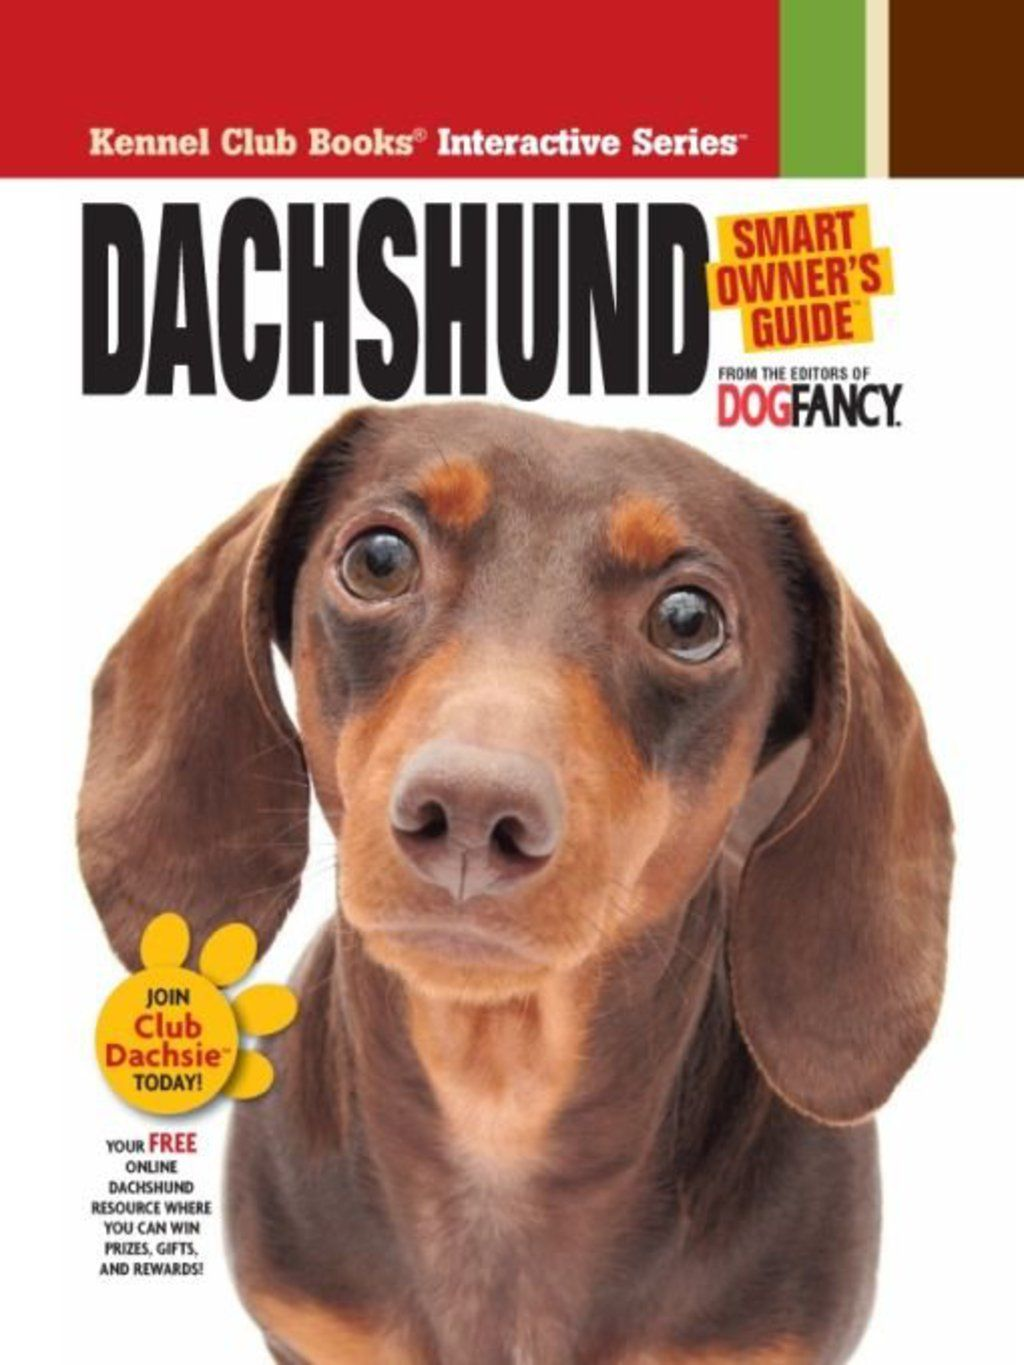 Dachshund Ebook Dog Books Dachshund Books